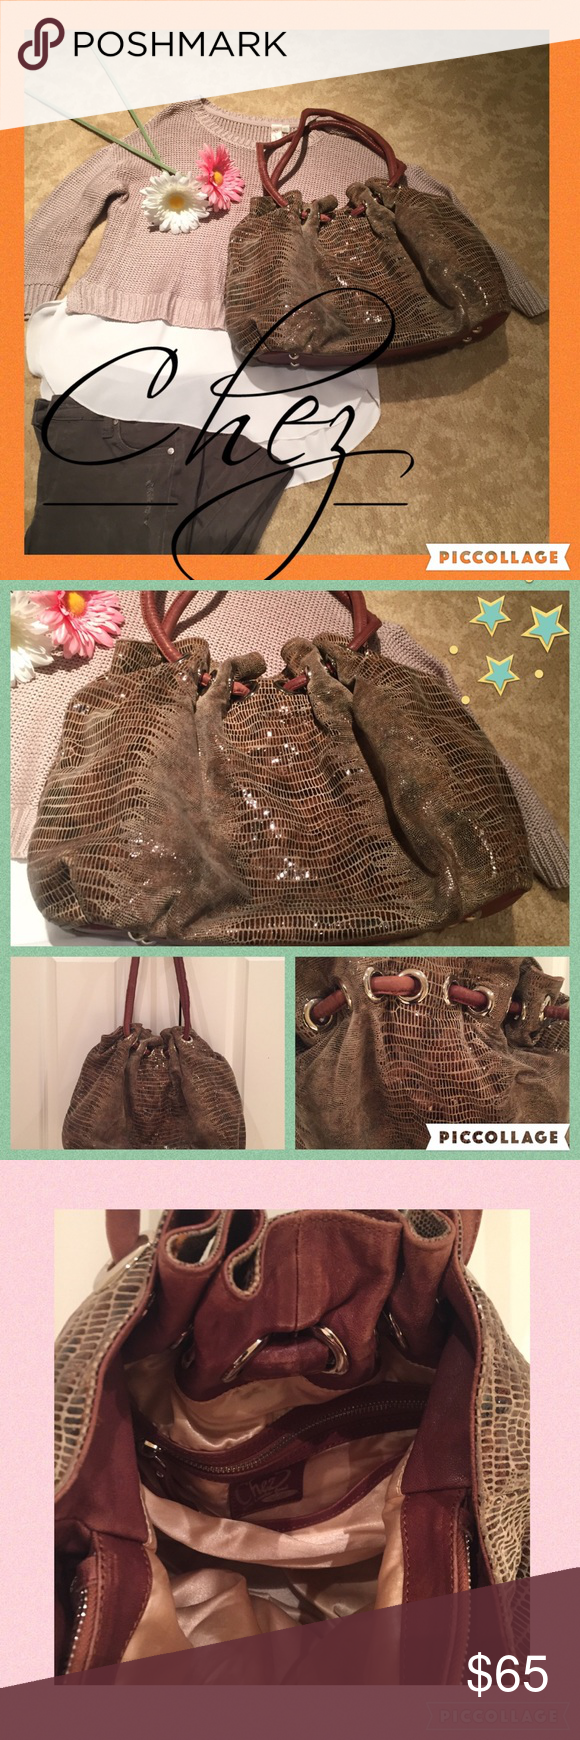 """💫Chez leather pocketbook💫 Fabulous bucket- style bag. Has a python look and a slight shimmer throughout the bag. Brown leather straps that intertwine through large silver loop holes. Magnetic closure. Interior is a beige satin feel.. (Has some stains on the interior). Very roomy... Has a center zipper compartment and two adjacent spaces. Small interior zipper pocket and two open cell-phone type slots!! Nail heads on the bottom of the bag for protection. 13"""" handle drop.  And bag measures…"""